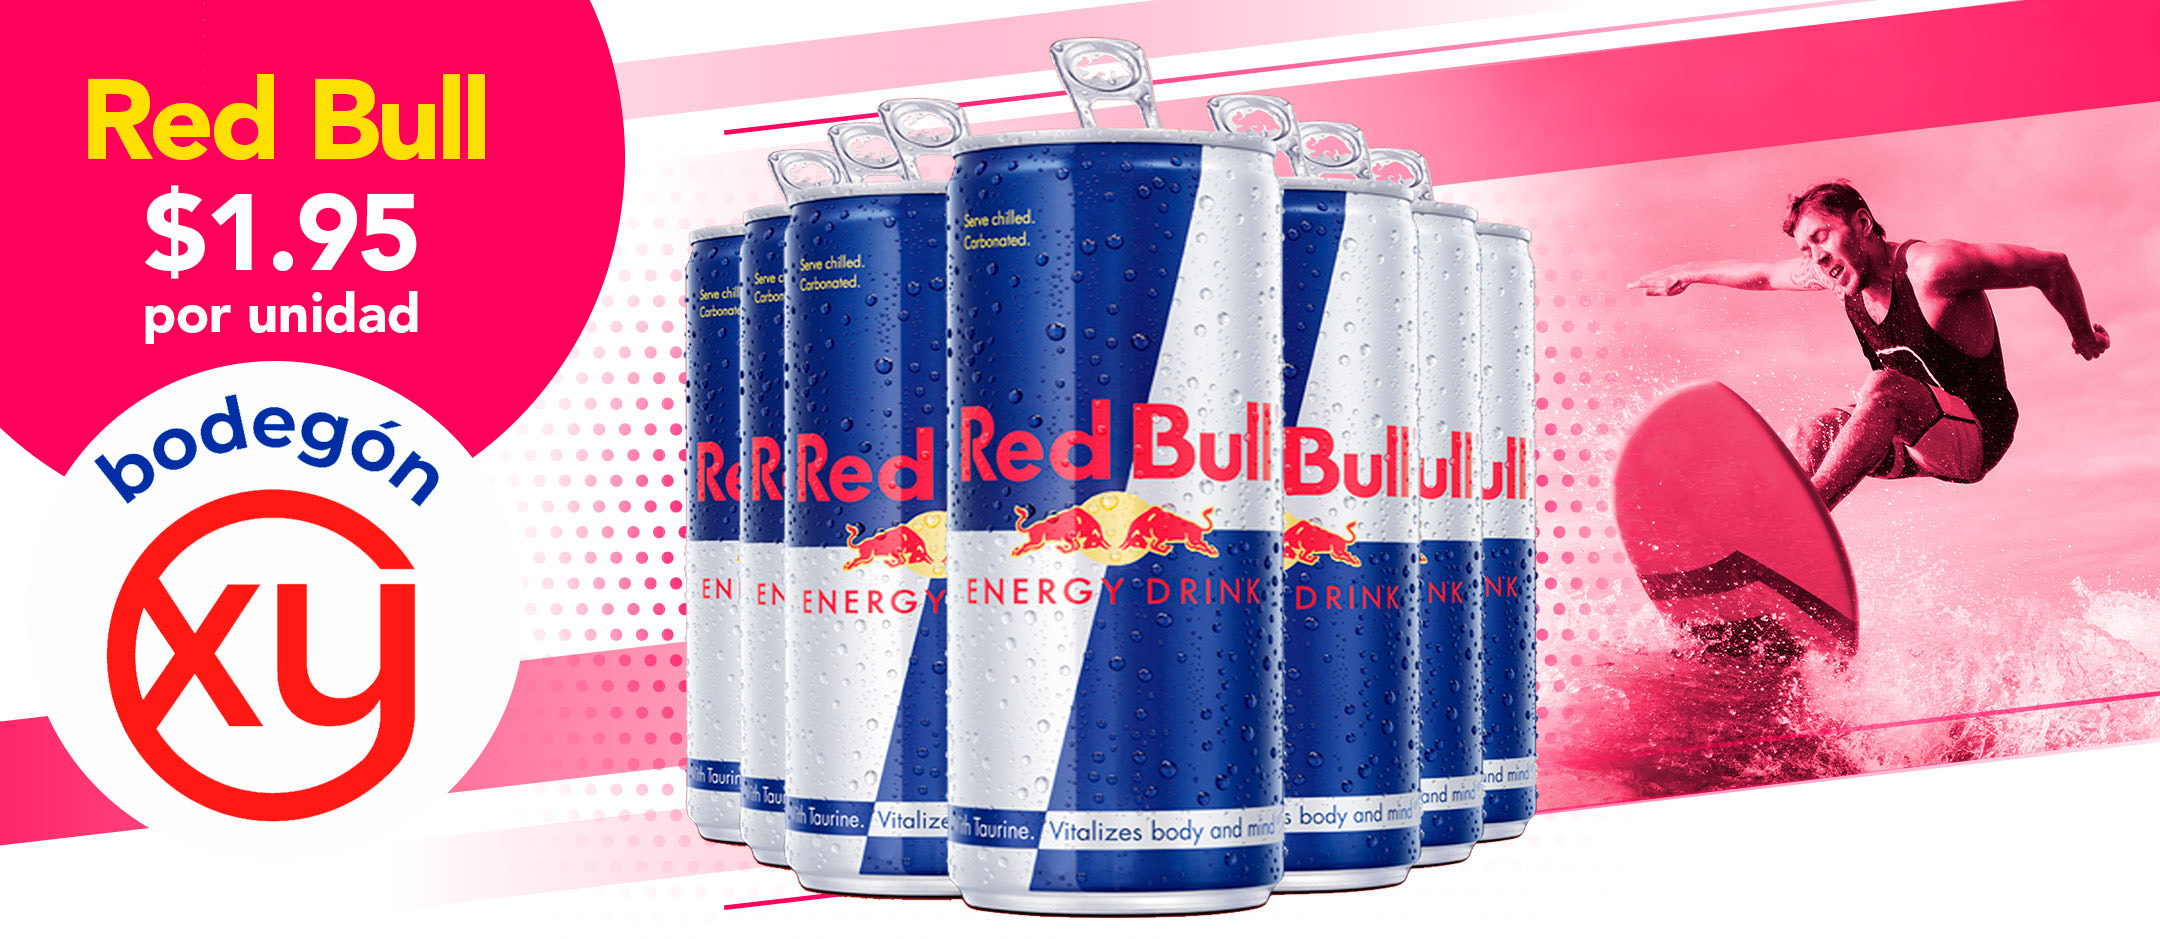 Bodegon XY red bull